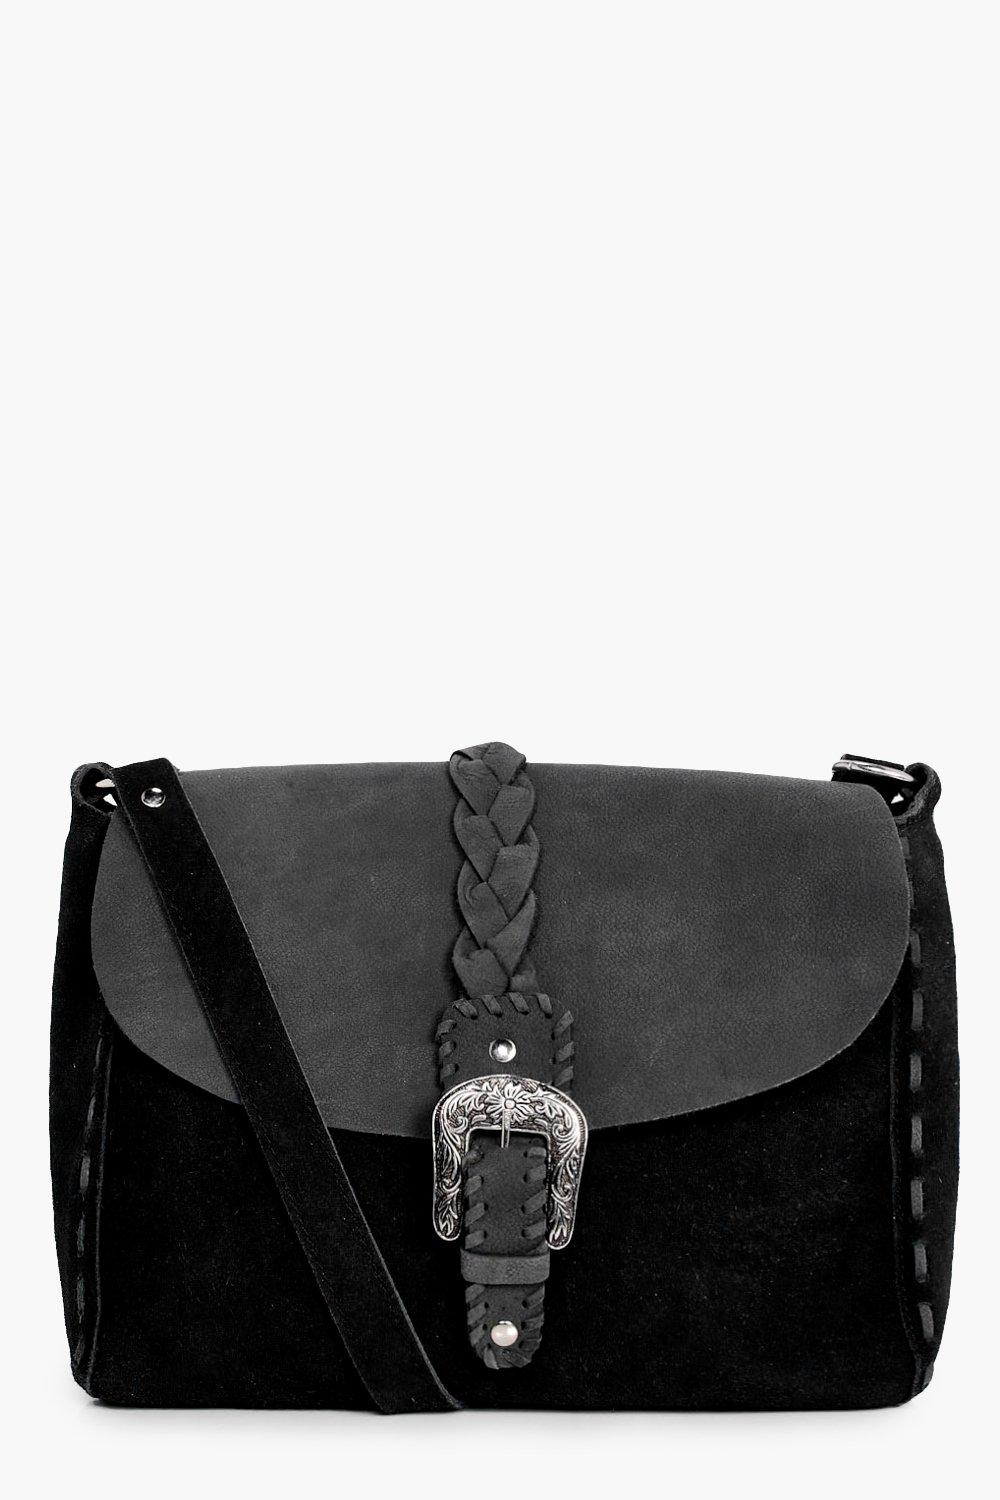 Boutique Leather & Suede Buckle Cross Body Bag - b